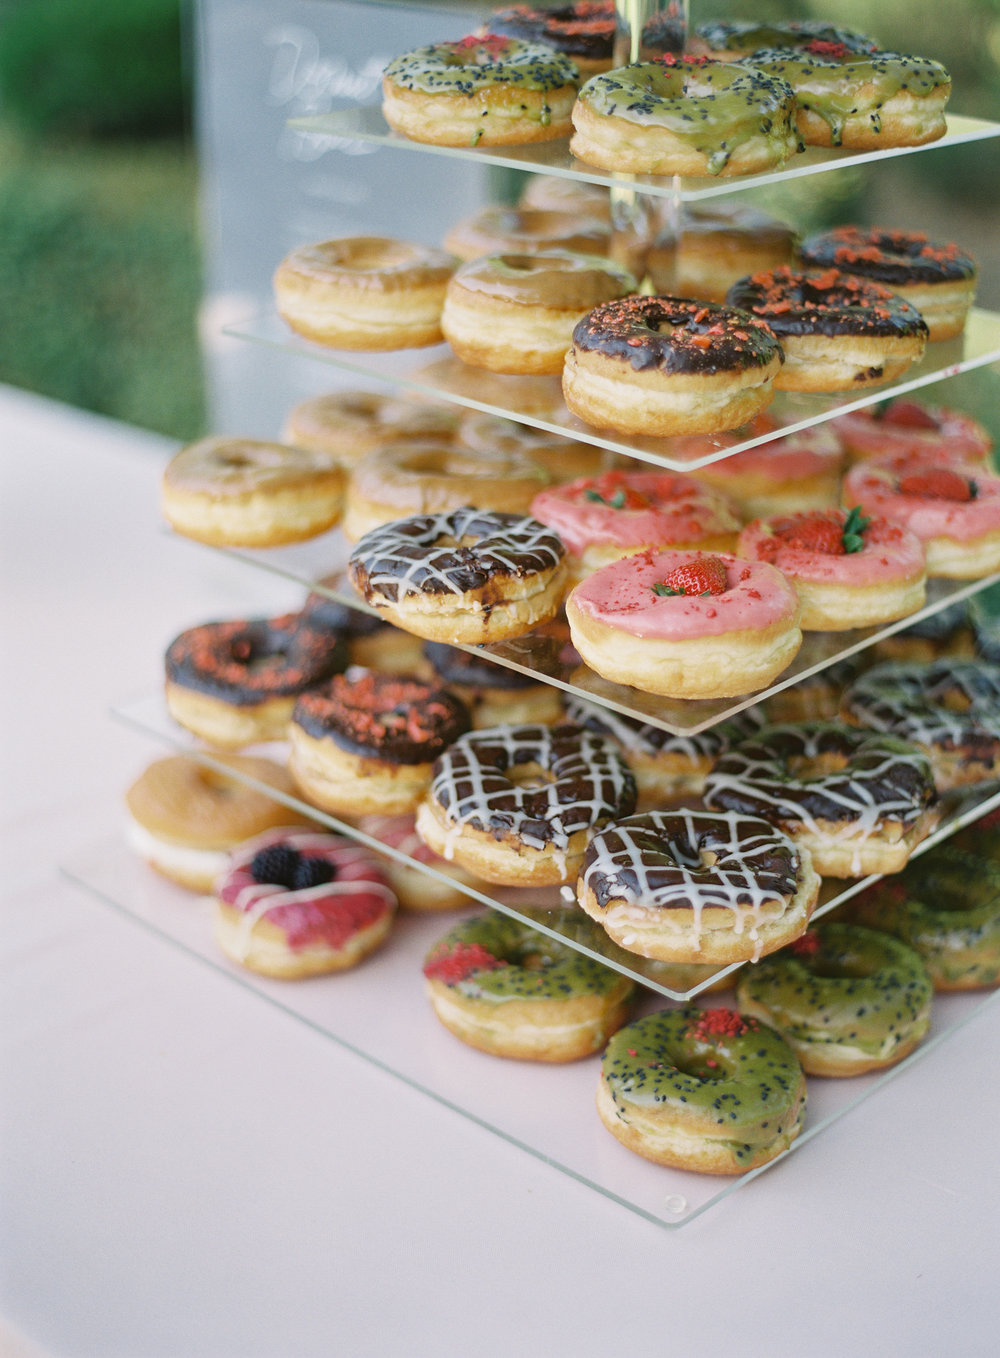 gourmet donut tower wedding dessert